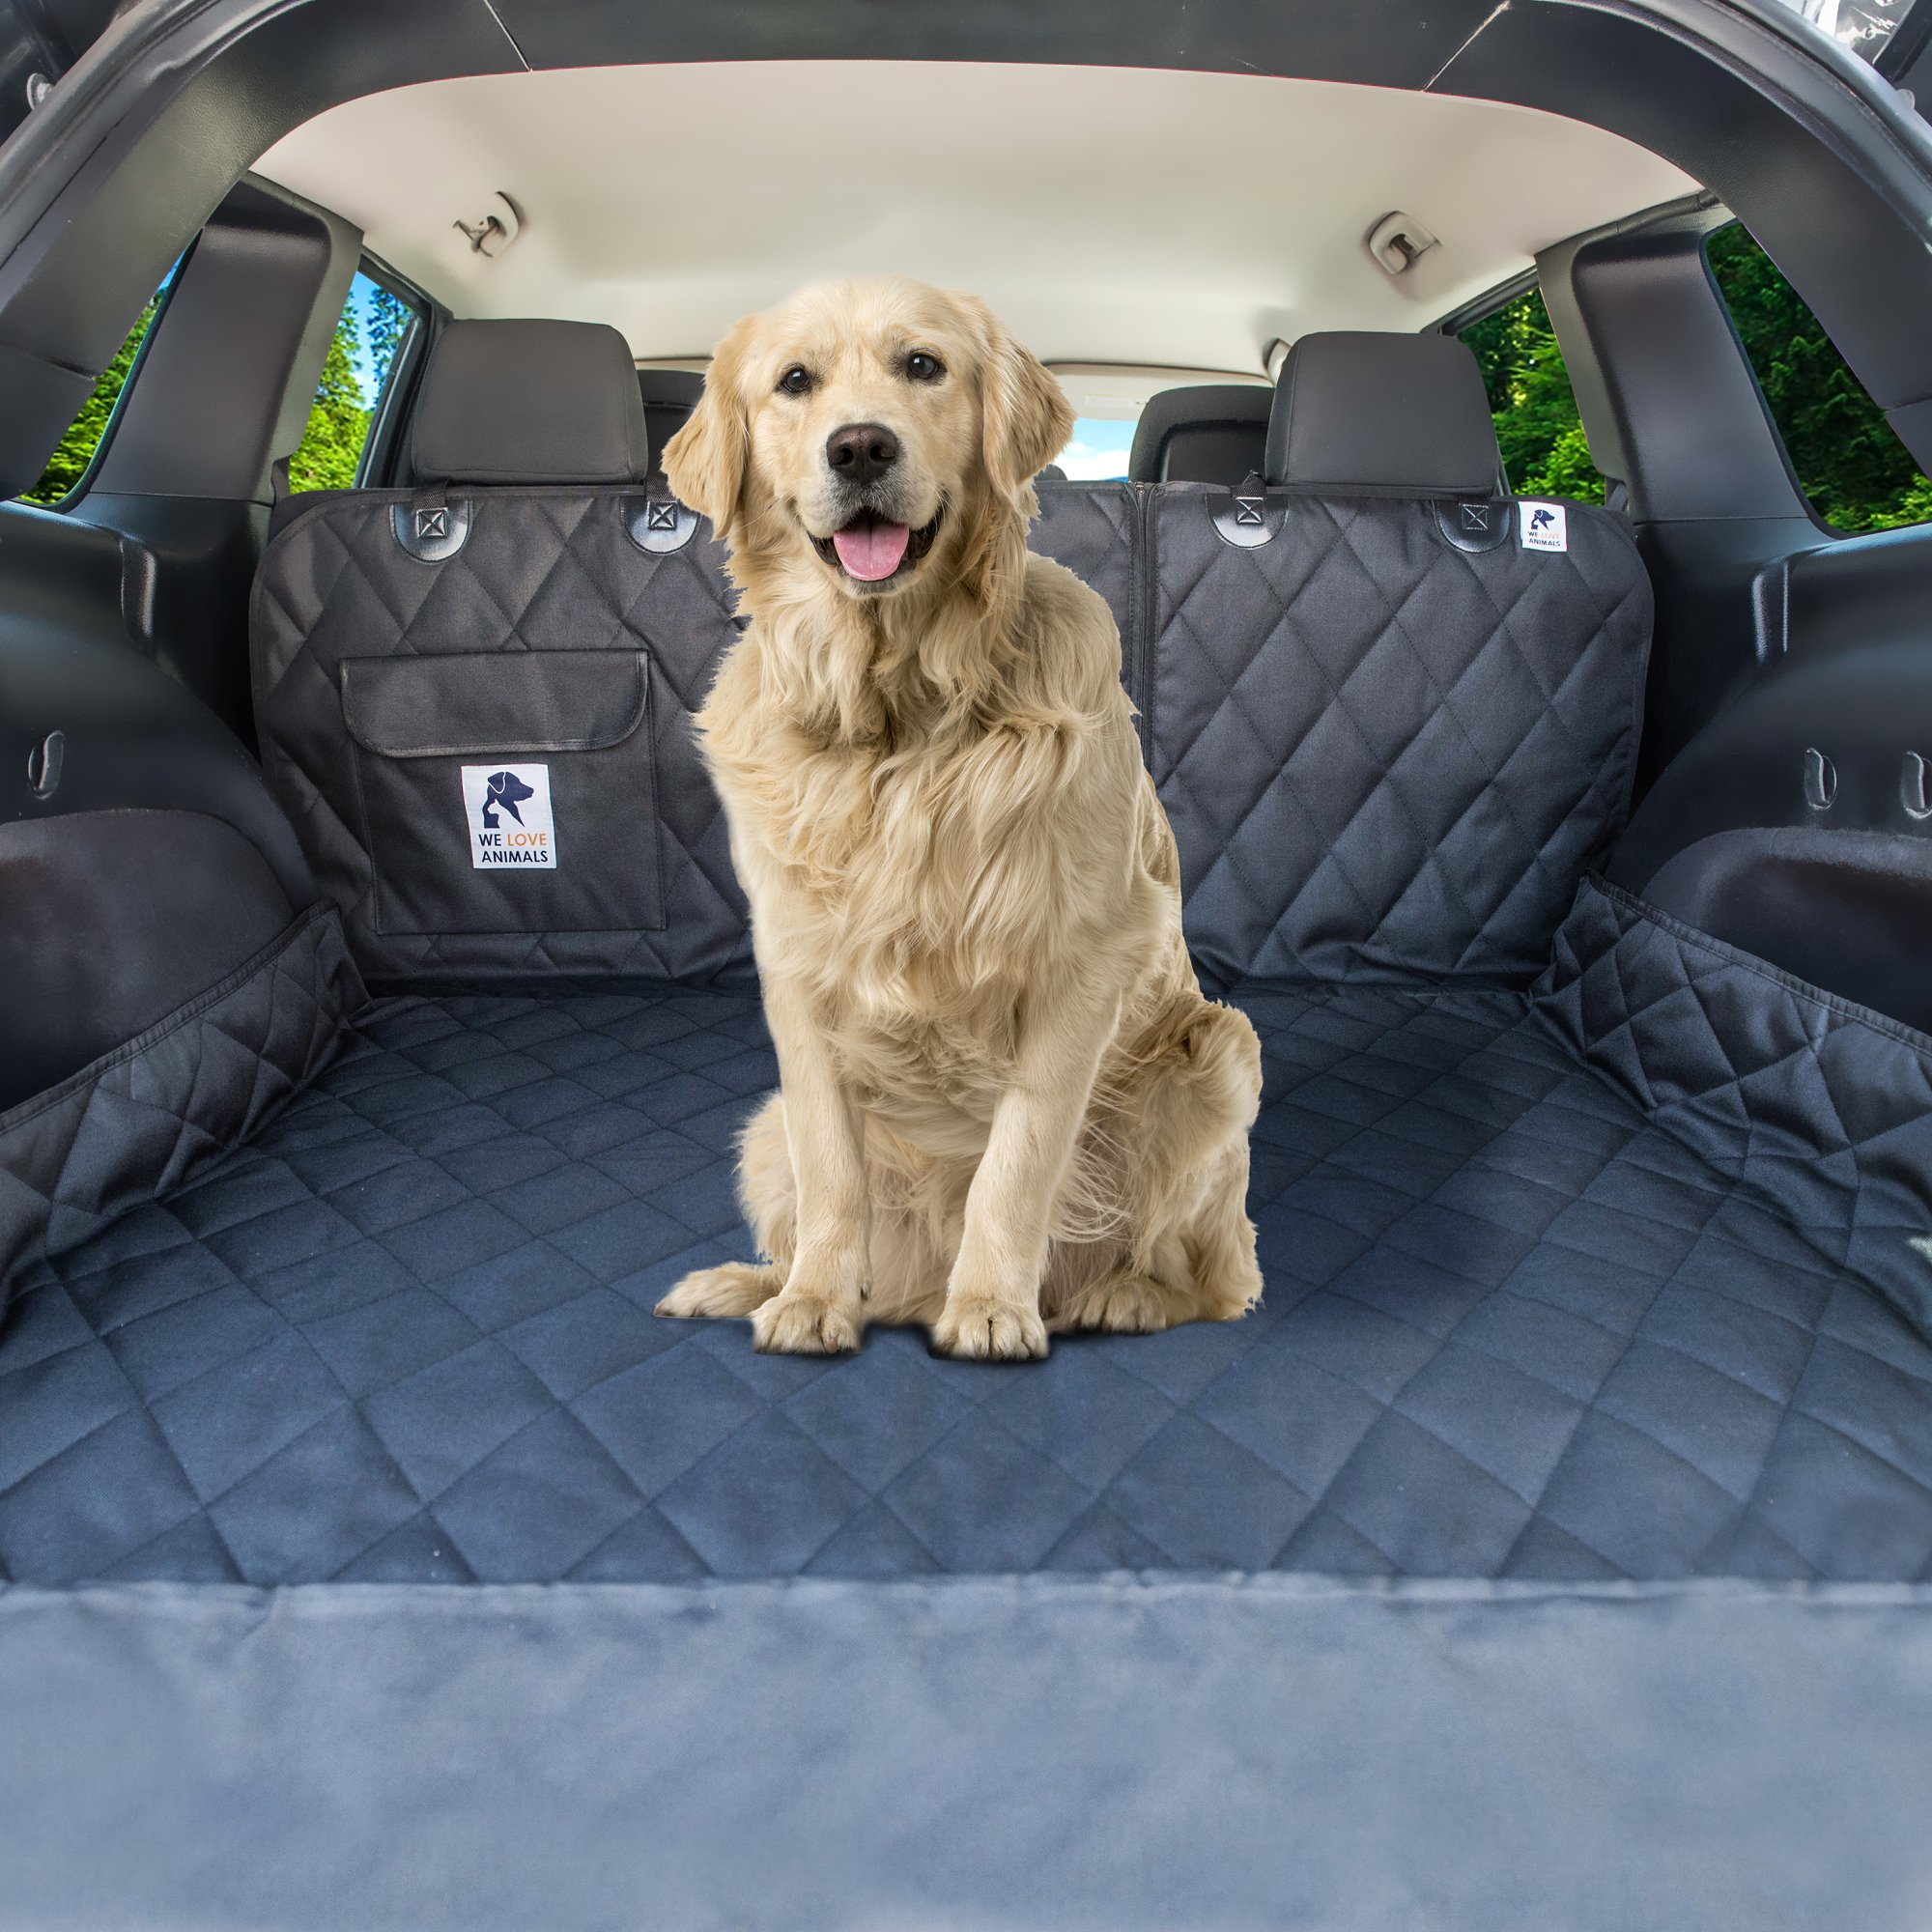 Dog Cargo Liner for SUV, Van, Truck & Jeep - Waterproof, Machine Washable, Nonslip Pet Seat Cover with Bumper Flap will keep your vehicle as clean as ever - XL, Universal Fit - BONUS Carry Bag by WE LOVE ANIMALS (Image #7)